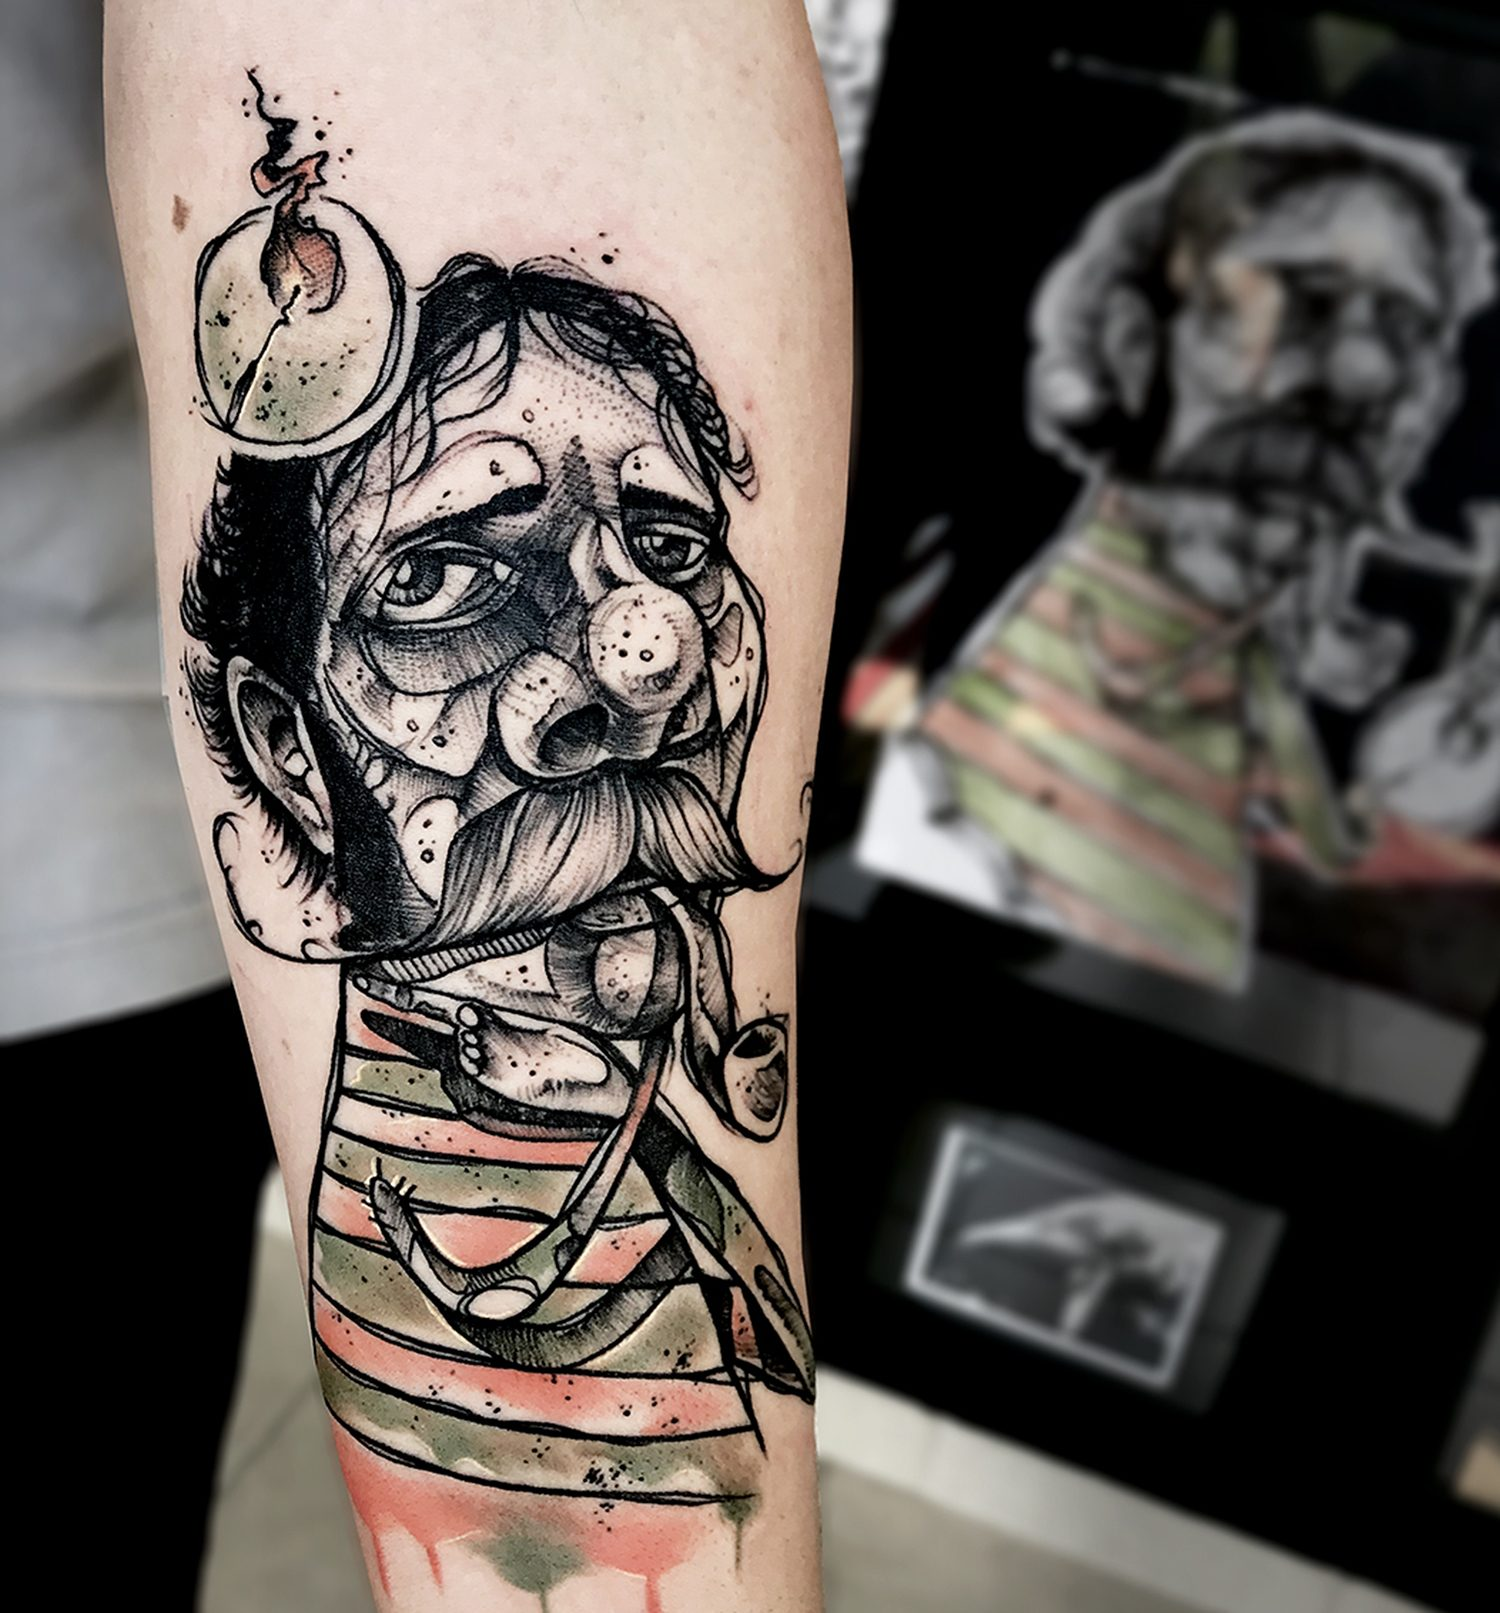 man with pipe, sketch style tattoo